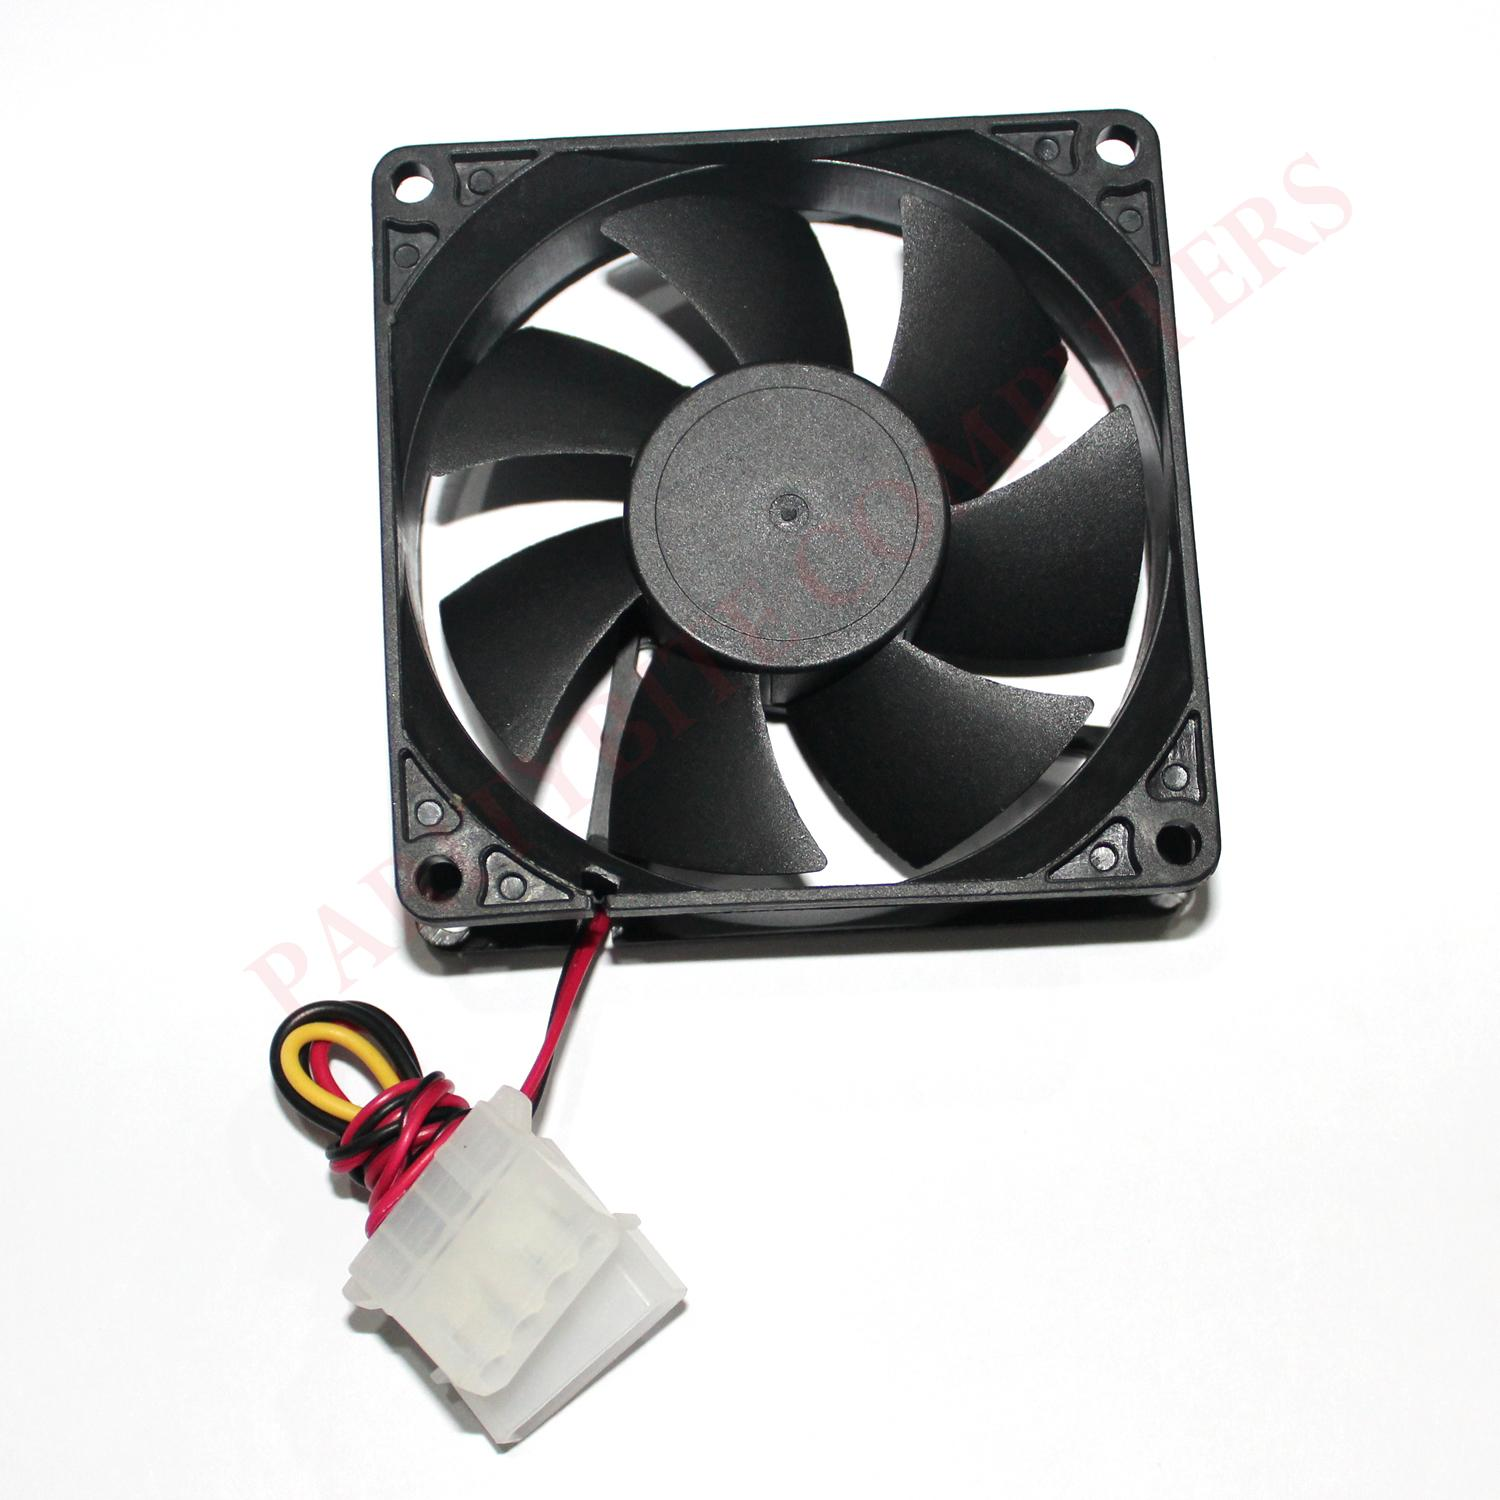 80mm Computer Case Fan 12v (case Cooling Fan) By Paritybite Computers.